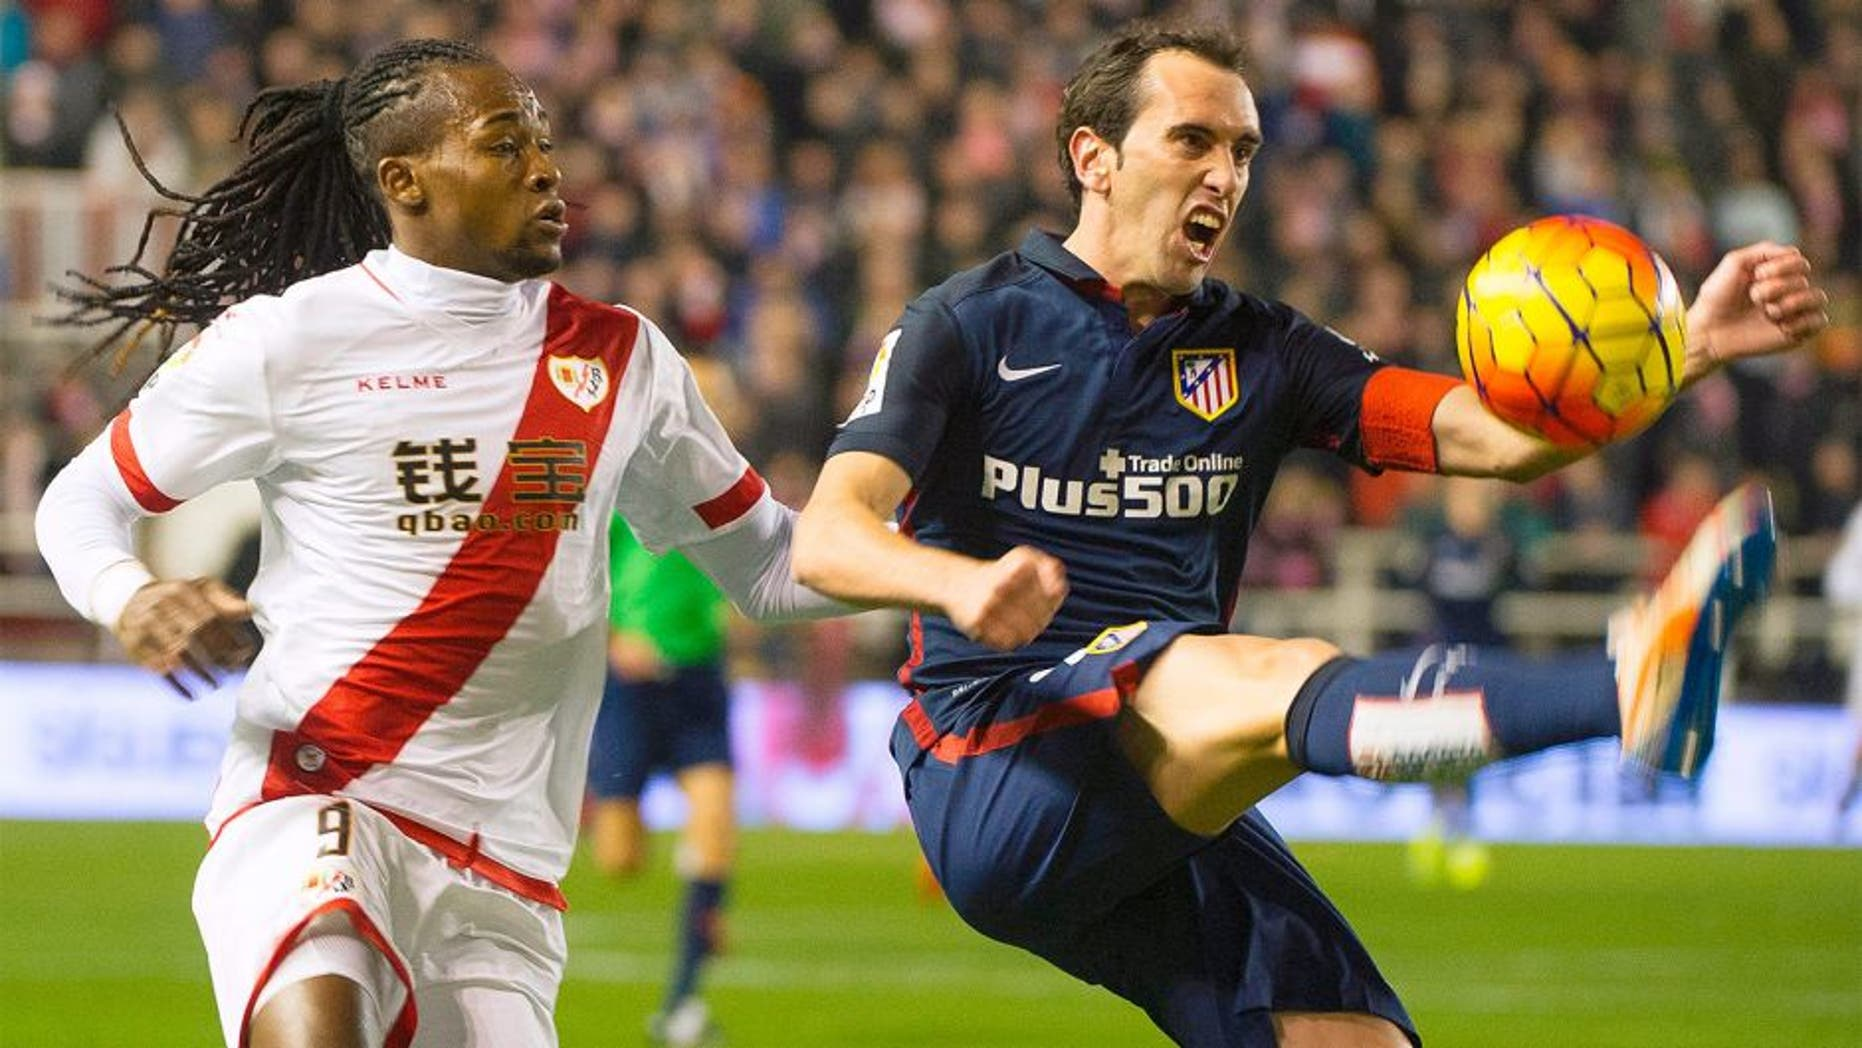 Rayo Vallecano's Angolan forward Alberto Manucho (L) vies with Atletico Madrid's Uruguayan defender Diego Godin during the Spanish league football match Rayo Vallecano de Madrid vs Club Atletico de Madrid at Vallecas stadium in Madrid on December 30, 2015. AFP PHOTO/ CURTO DE LA TORRE / AFP / CURTO DE LA TORRE (Photo credit should read CURTO DE LA TORRE/AFP/Getty Images)